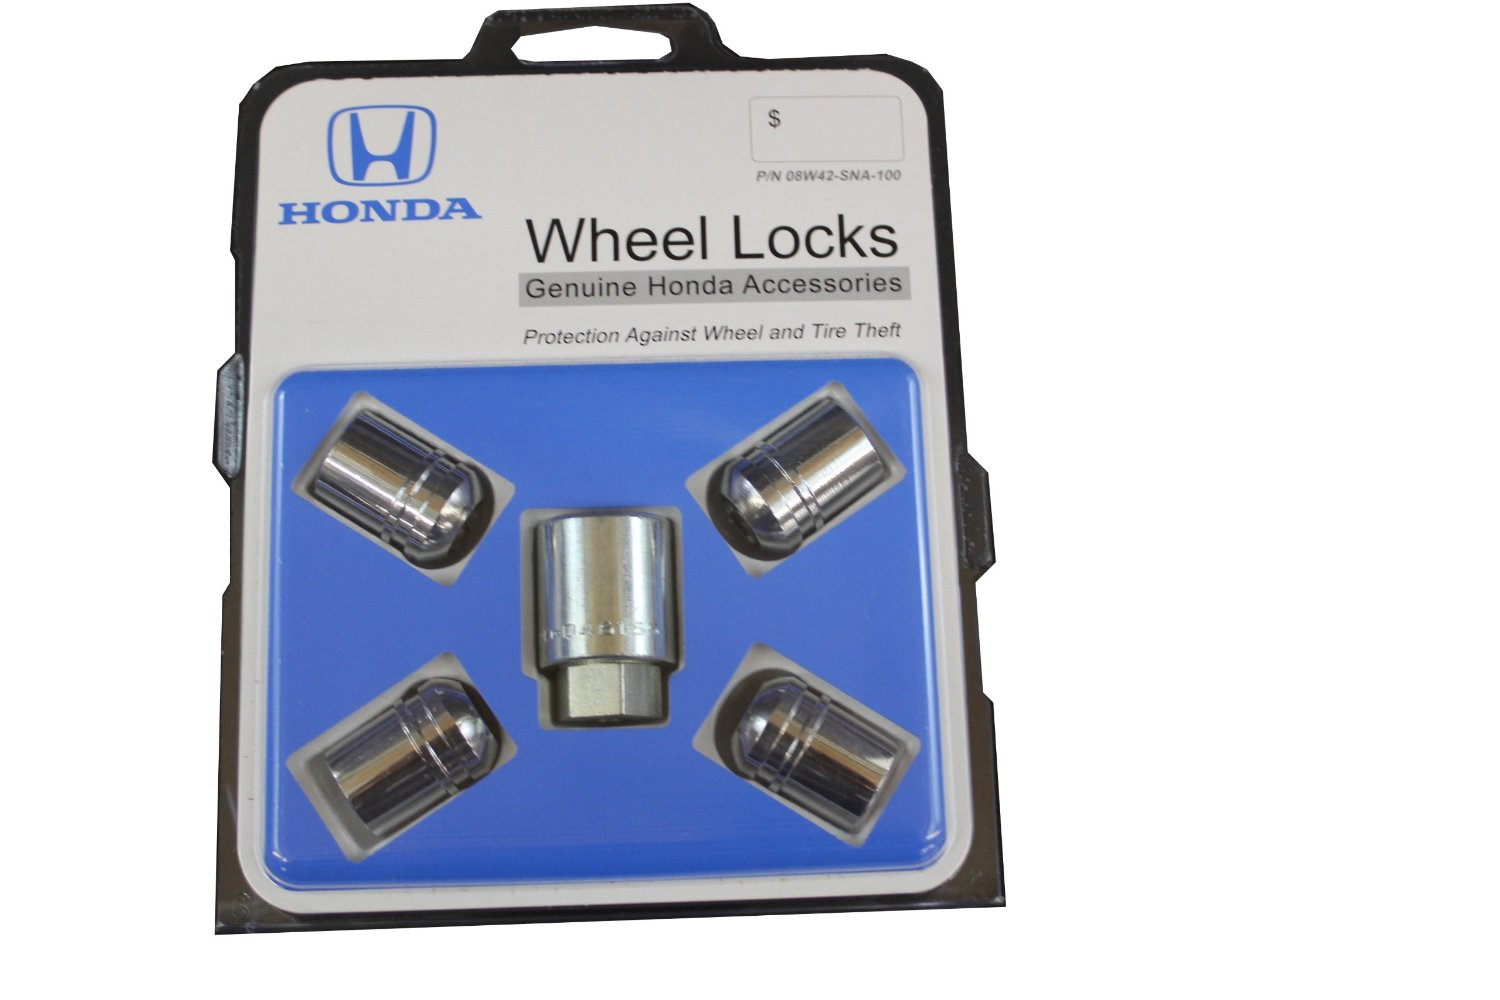 WHEEL LOCK NUT SET (EXPOSED) Fits all Hondas except Odyssey,Pilot, Ridgeline, and Passport - Honda (08W42-SNA-100)